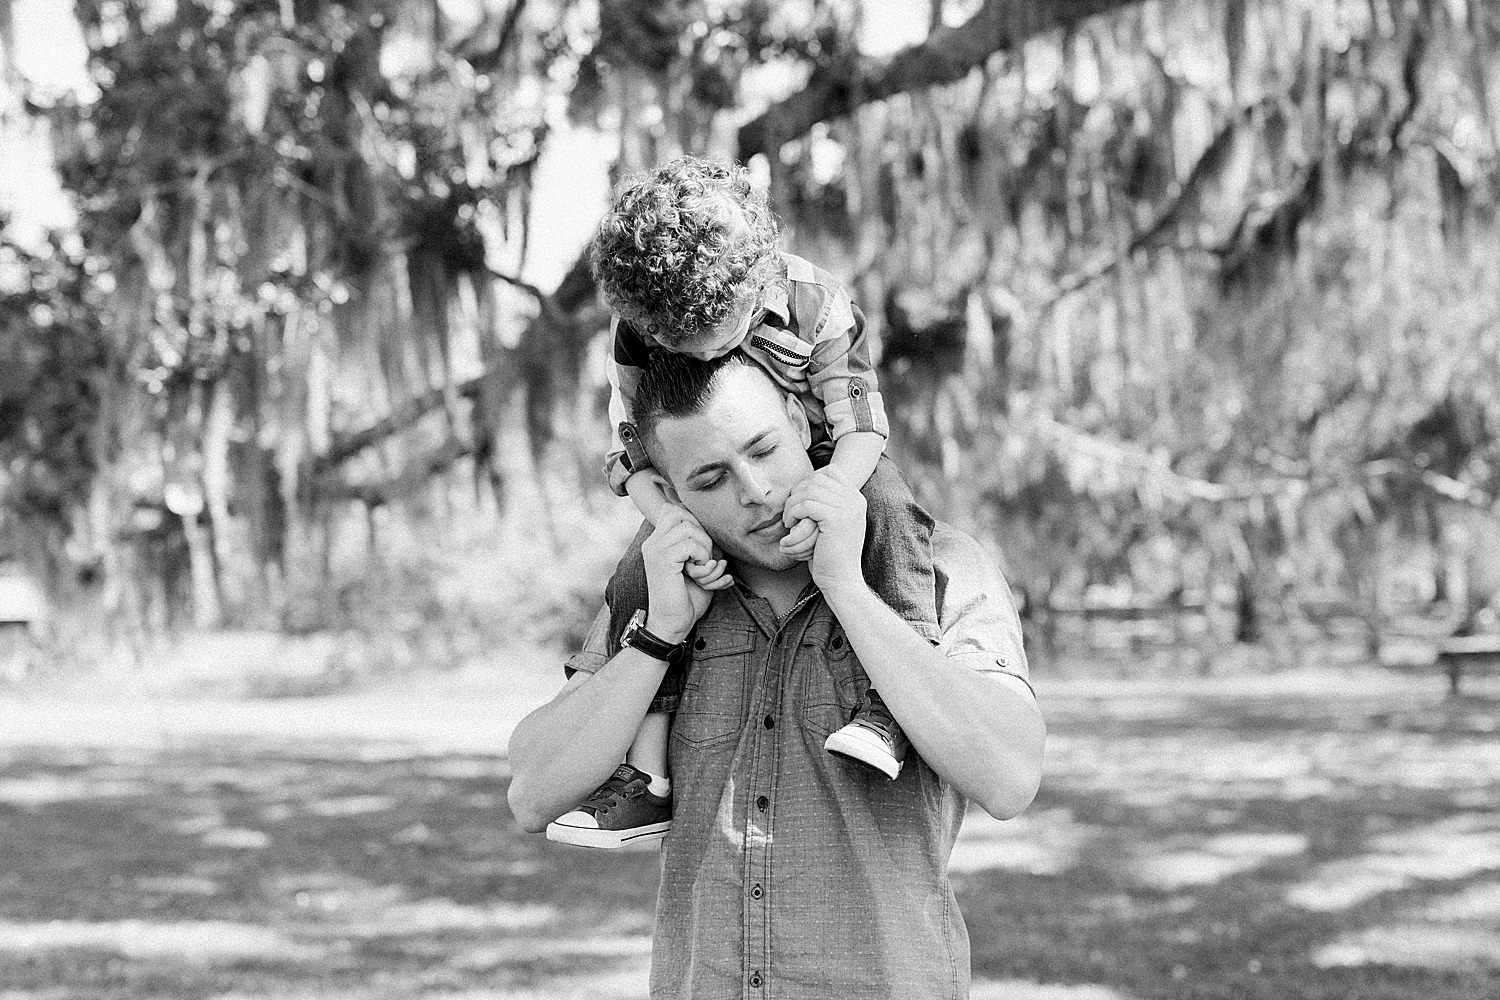 Dad and Son embrace under giant oak tree